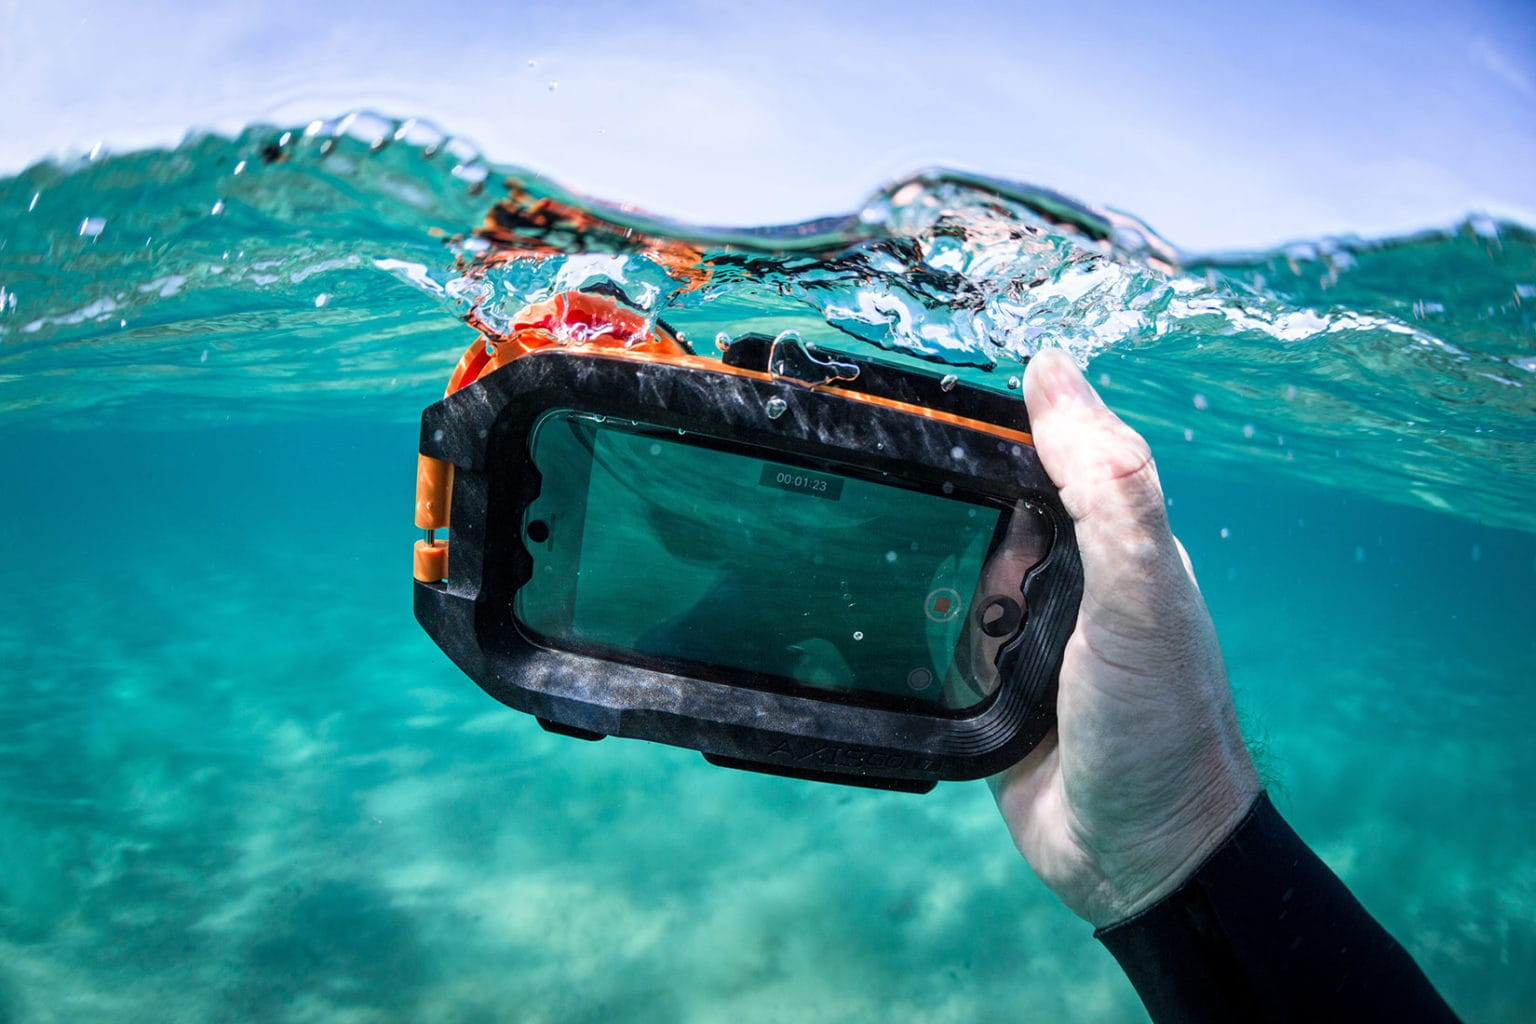 AquaTech AxisGo waterproof case